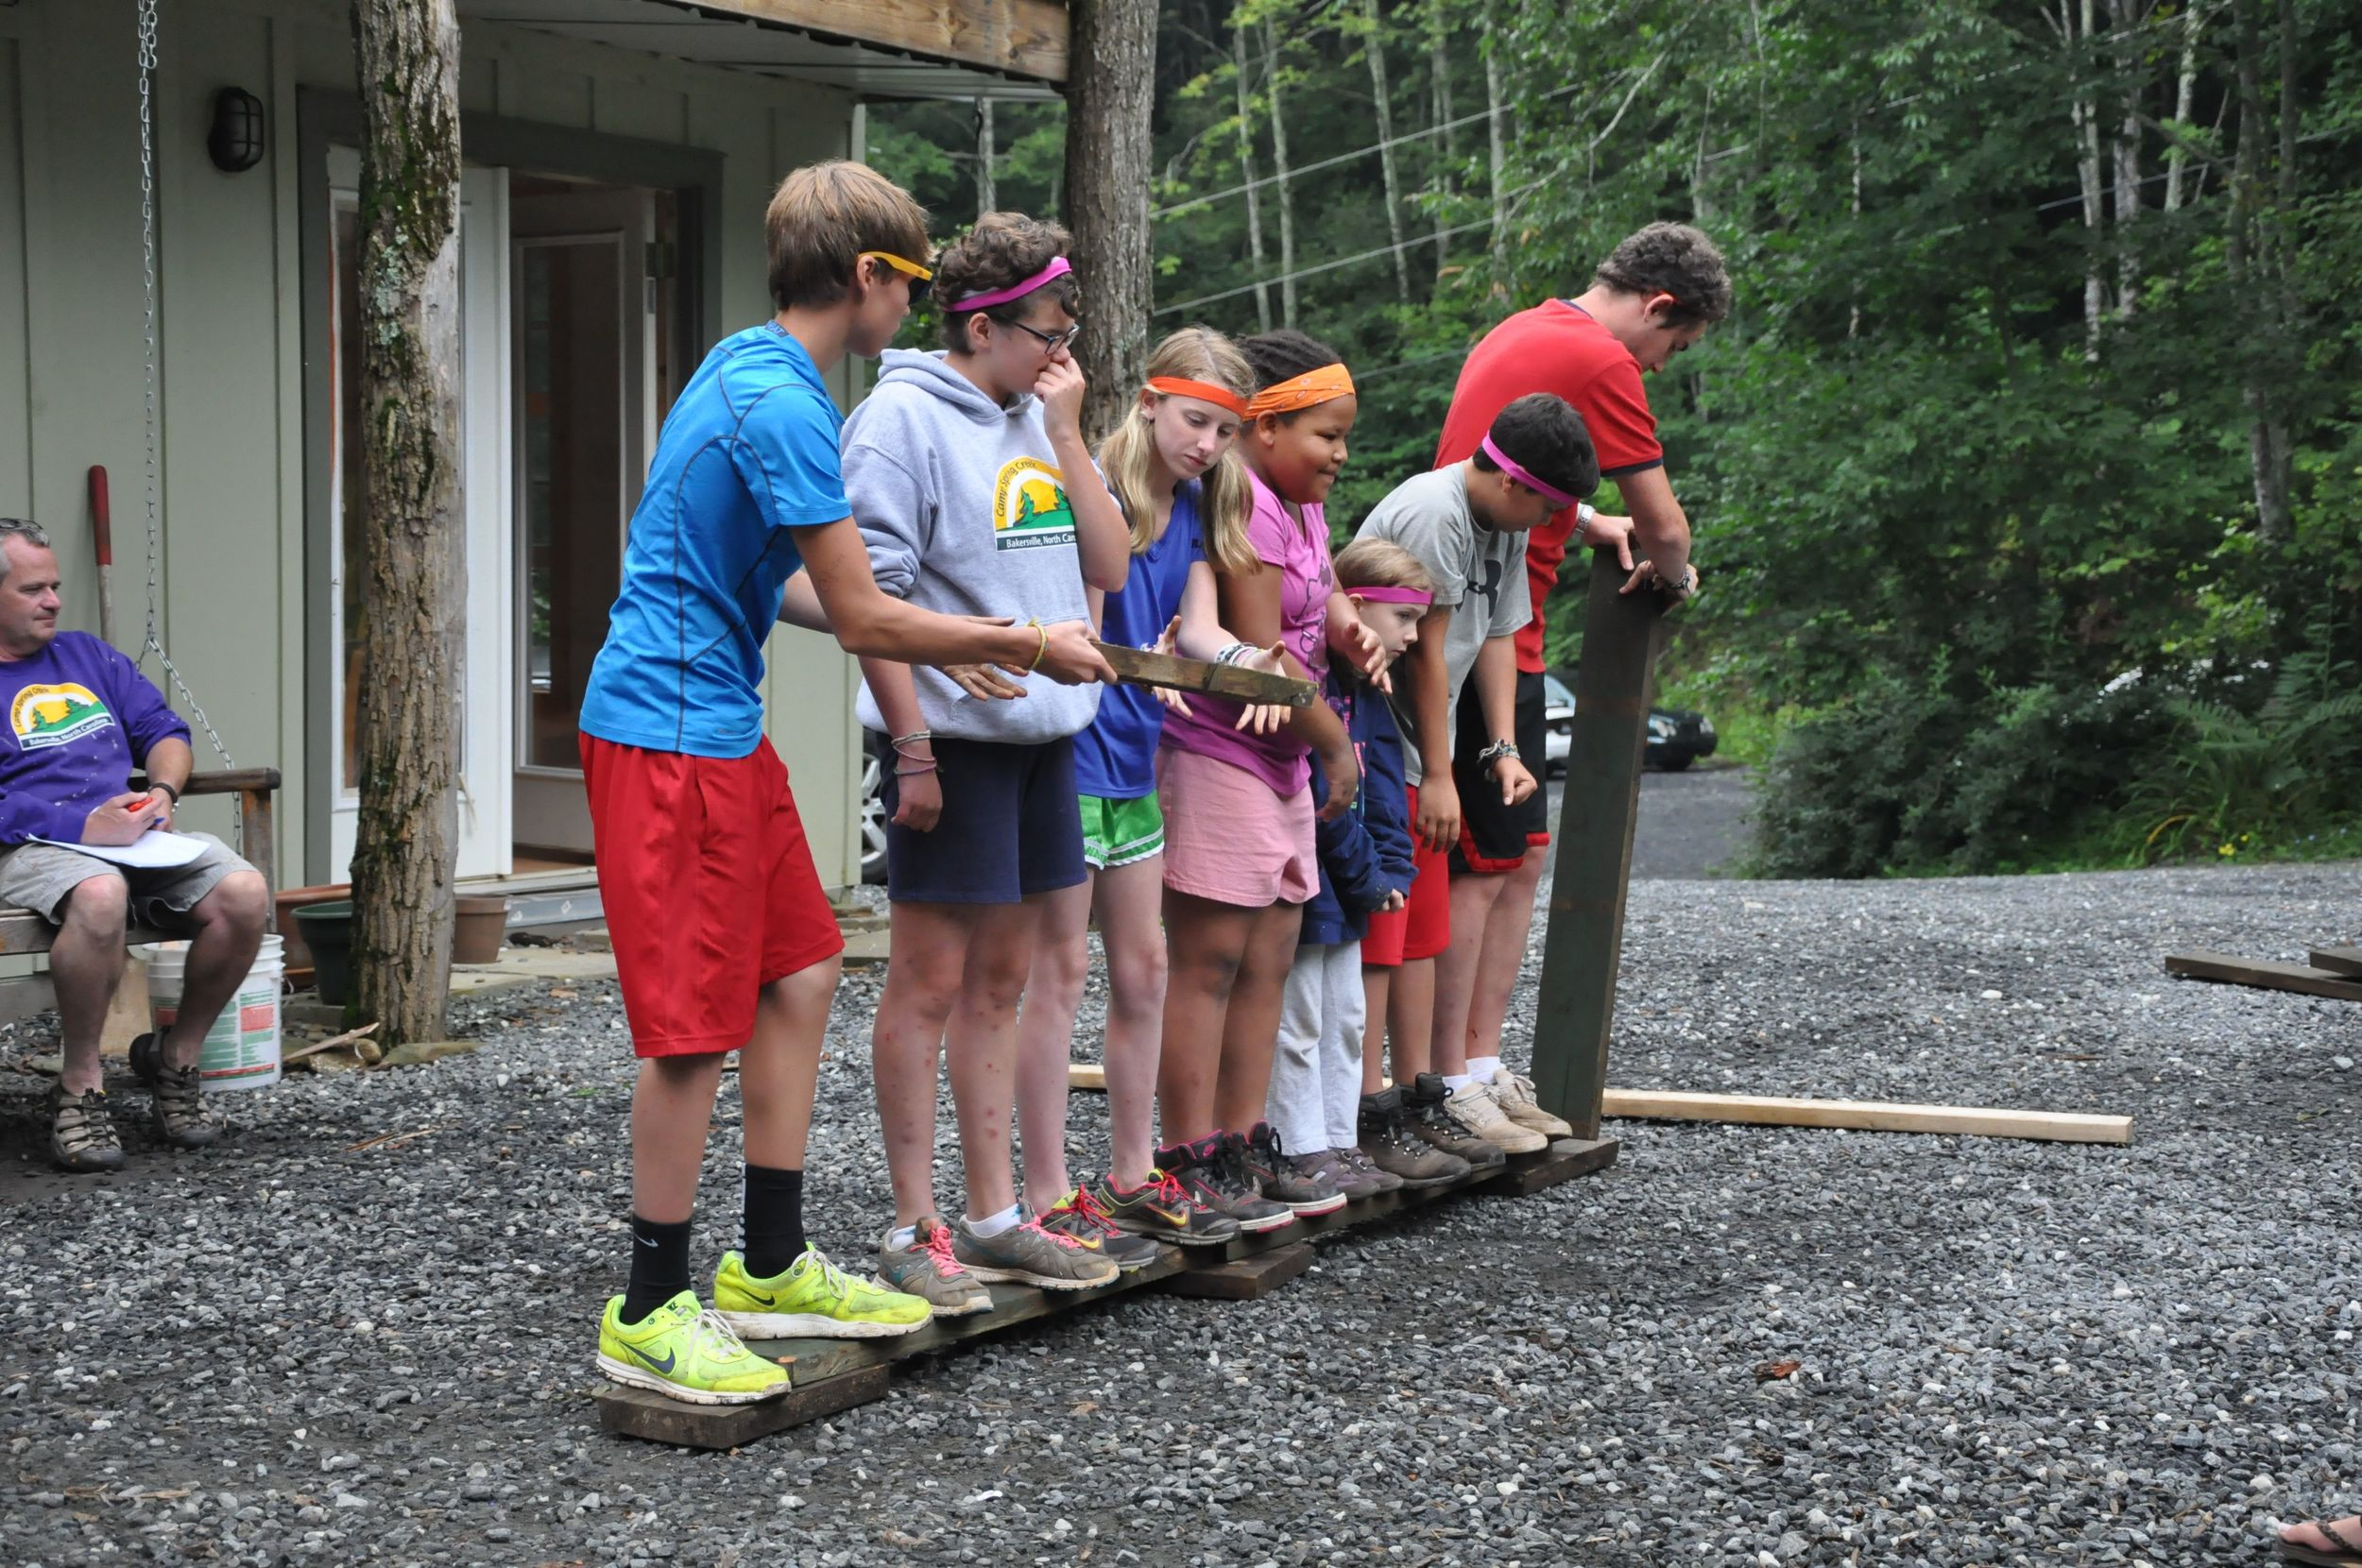 bruce-michelle-emily-regianna-abby-ethan-and-ben-demonstrate-that-teamwork-is-the-best-stradegy-in-this-challenge.jpg